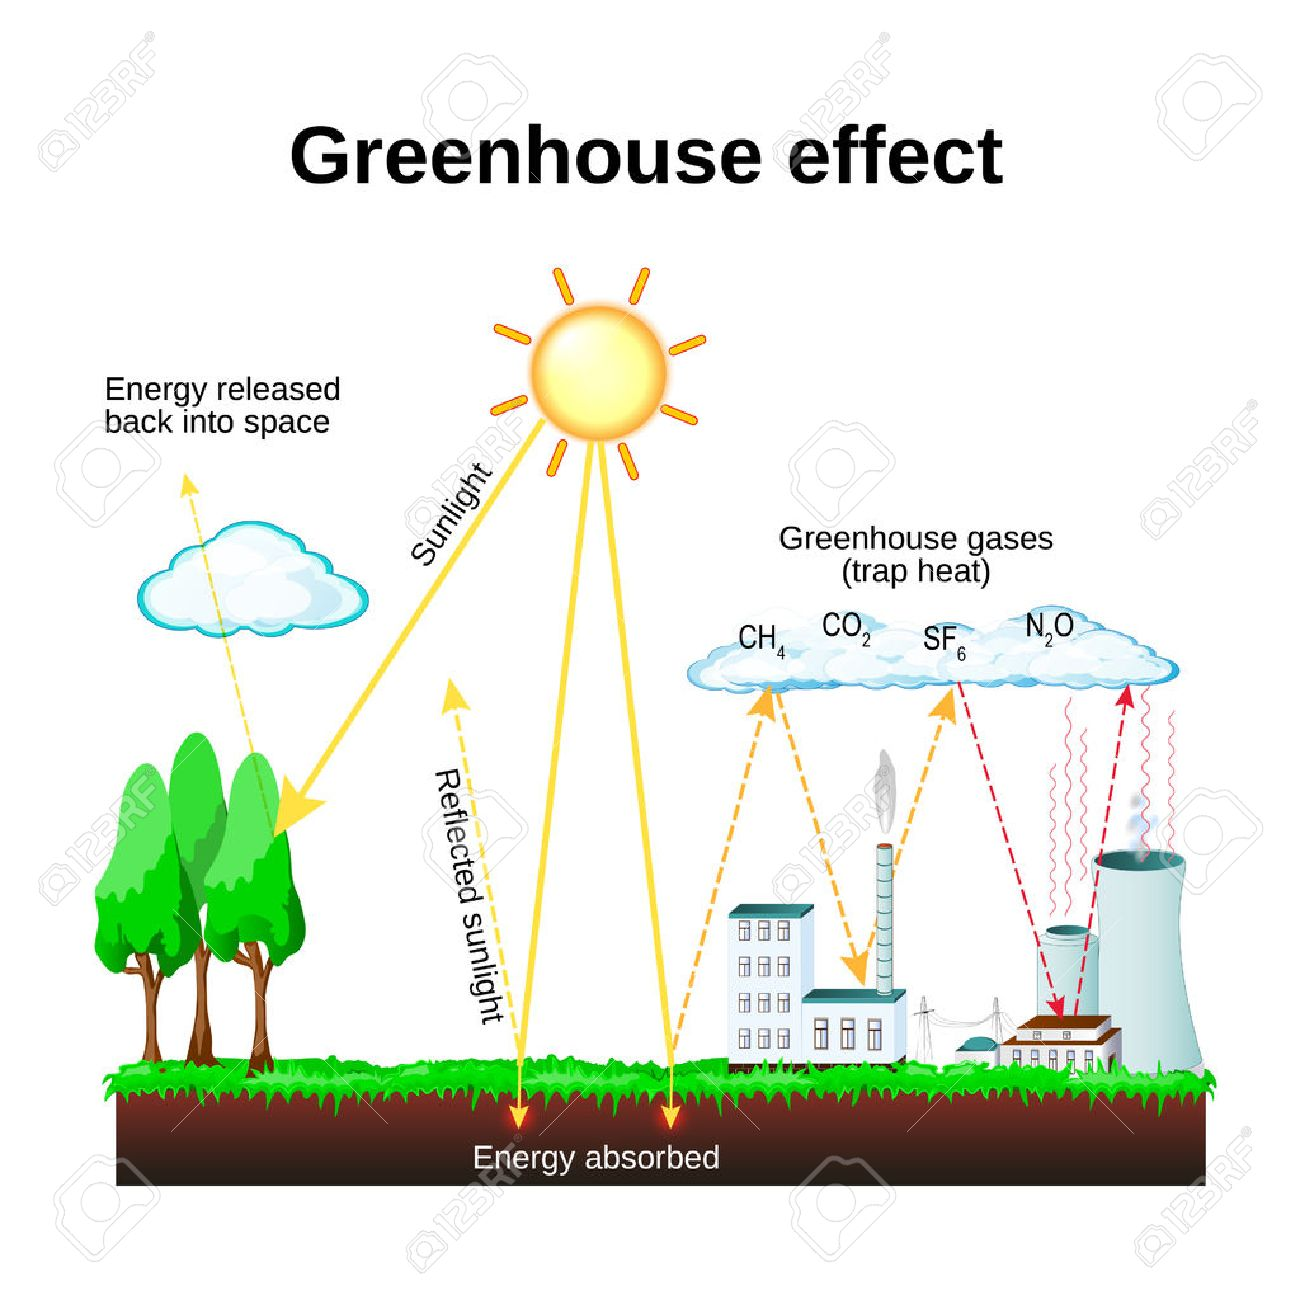 Greenhouse effect diagram showing how the greenhouse effect greenhouse effect diagram showing how the greenhouse effect works global warming stock vector ccuart